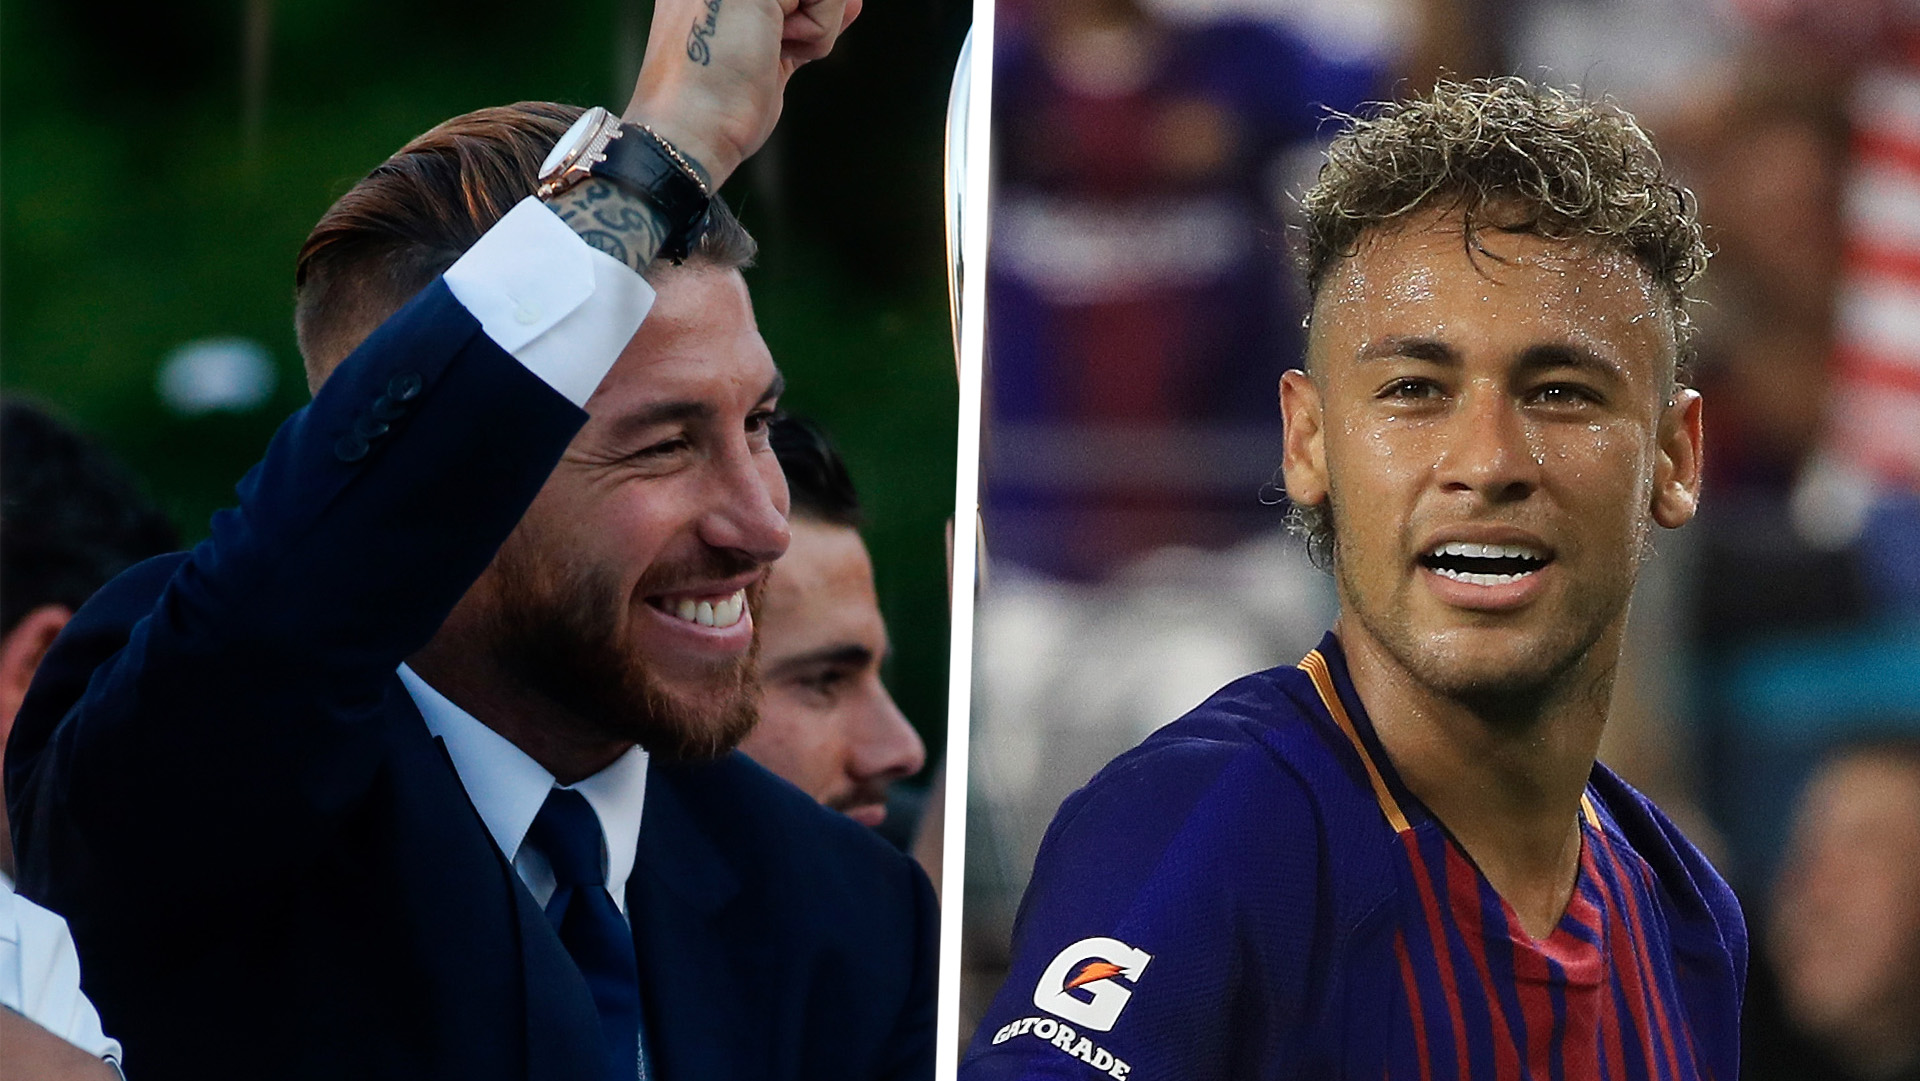 Sergio Ramos Hails Real Madrid Target Neymar As One Of The World's Best